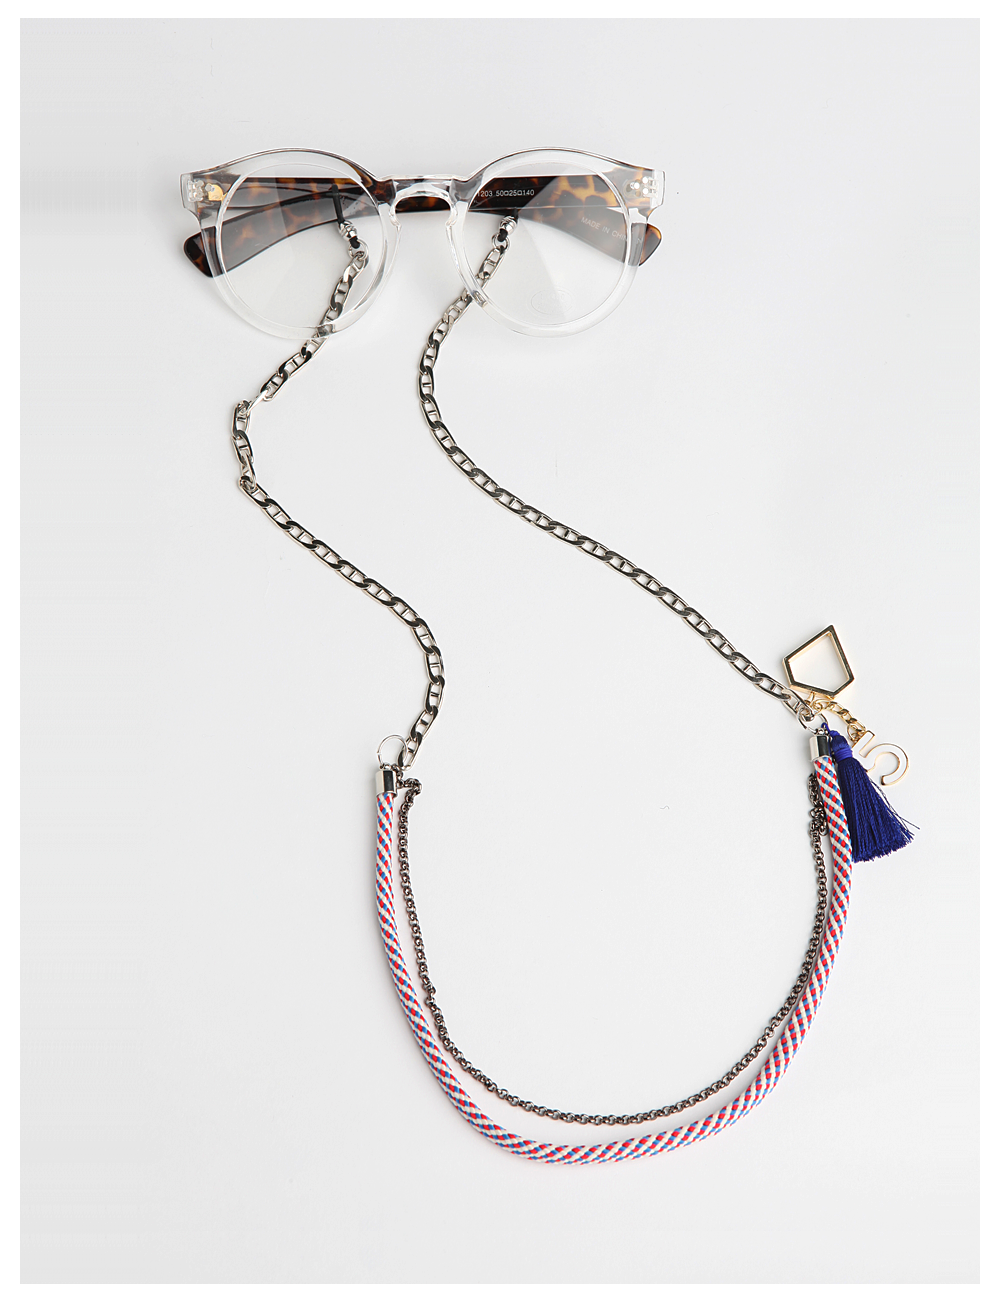 HIPSTER RIO / blue_EYE GLASS CHAIN